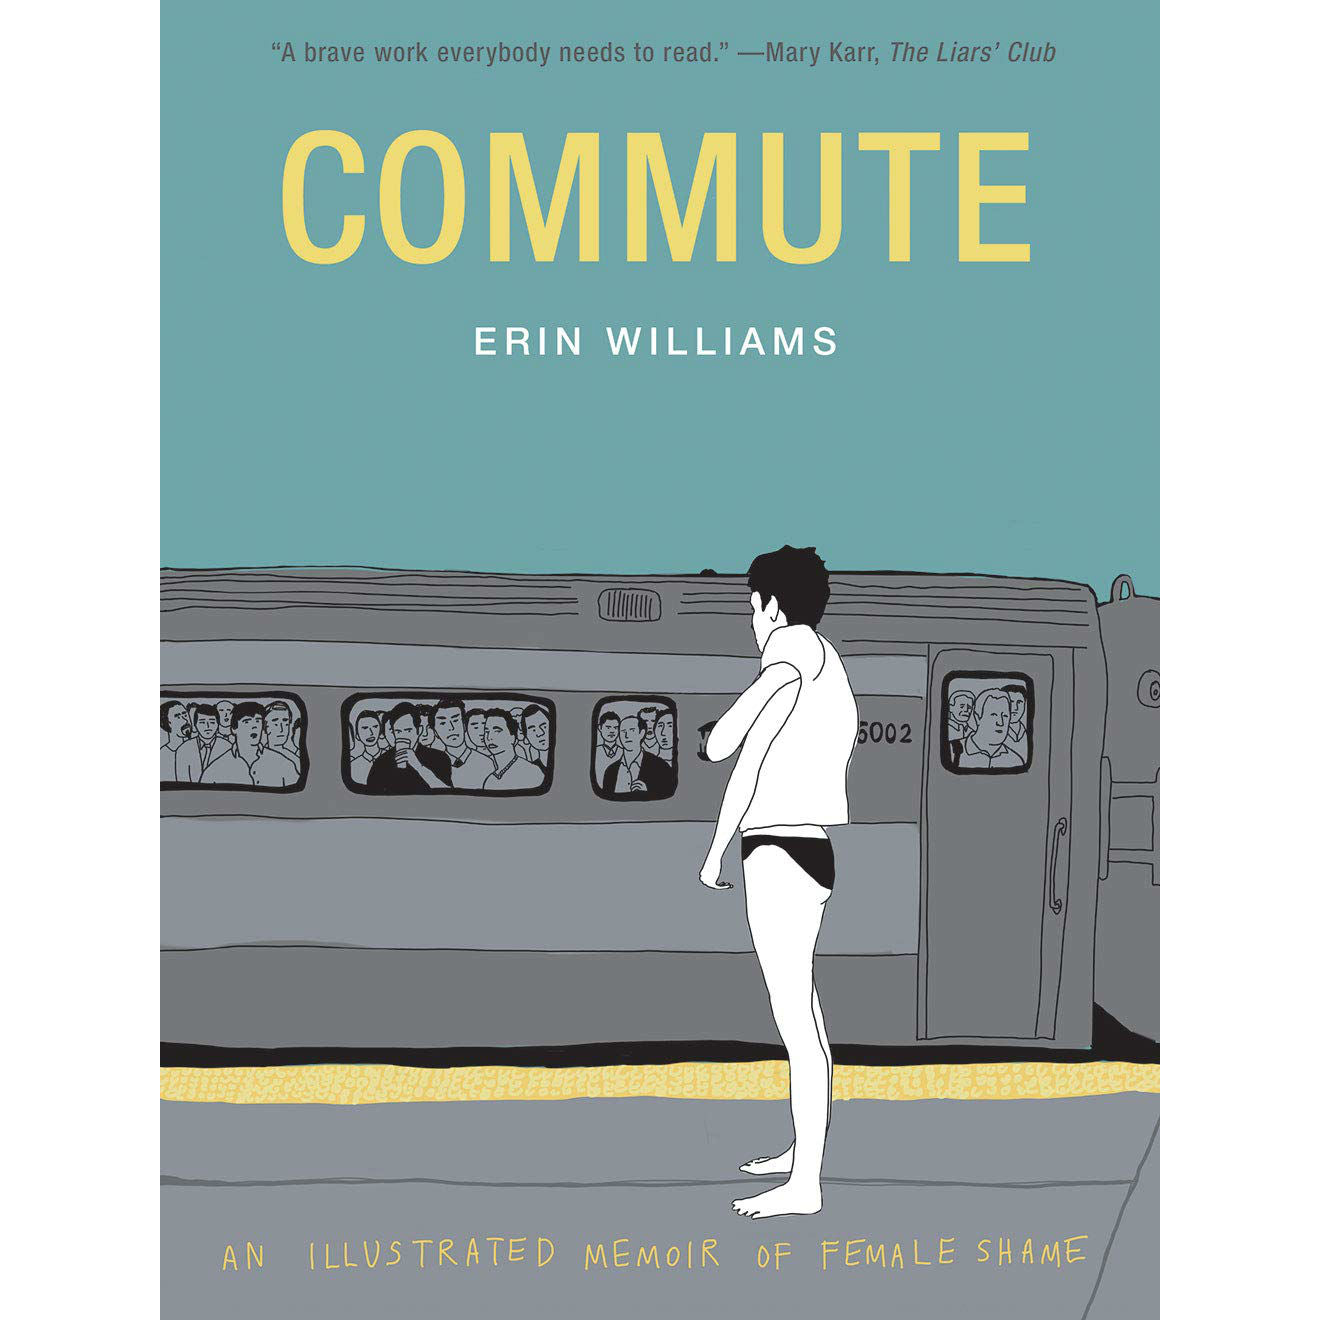 Commute: An Illustrated Memoir of Female Shame